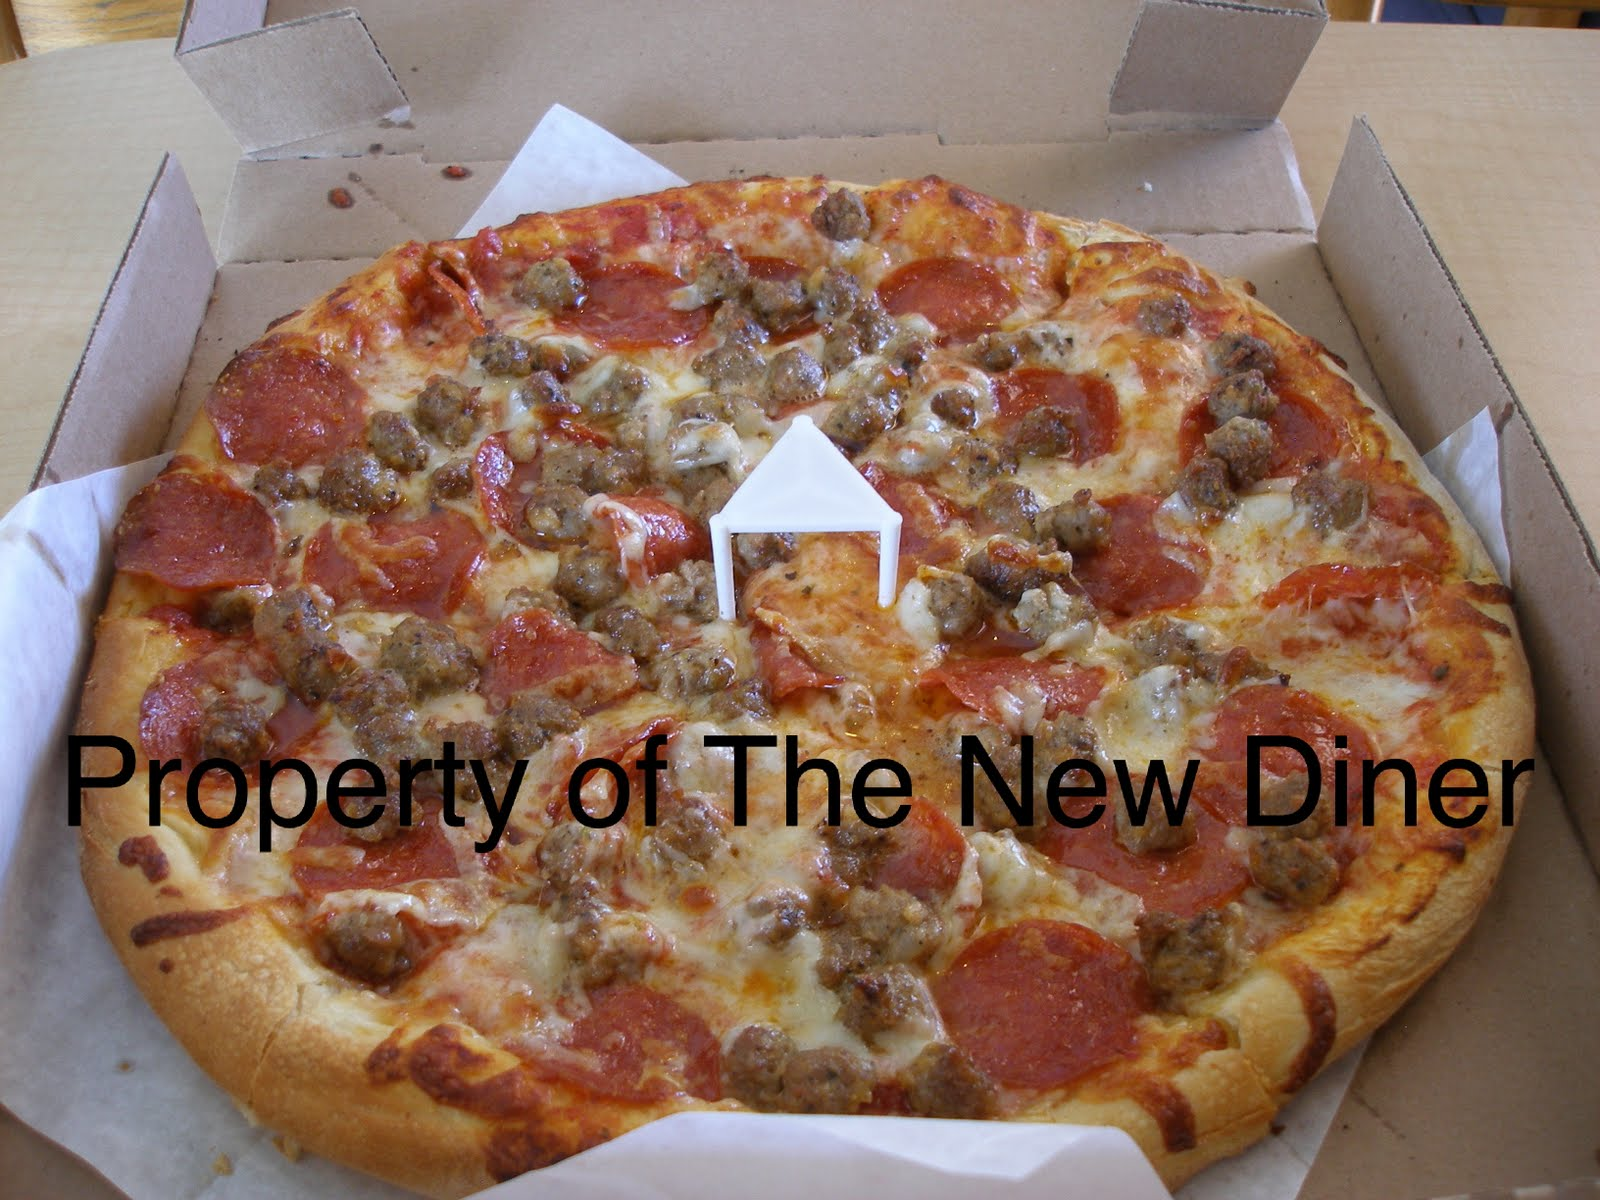 The New Diner: California Pizza Place